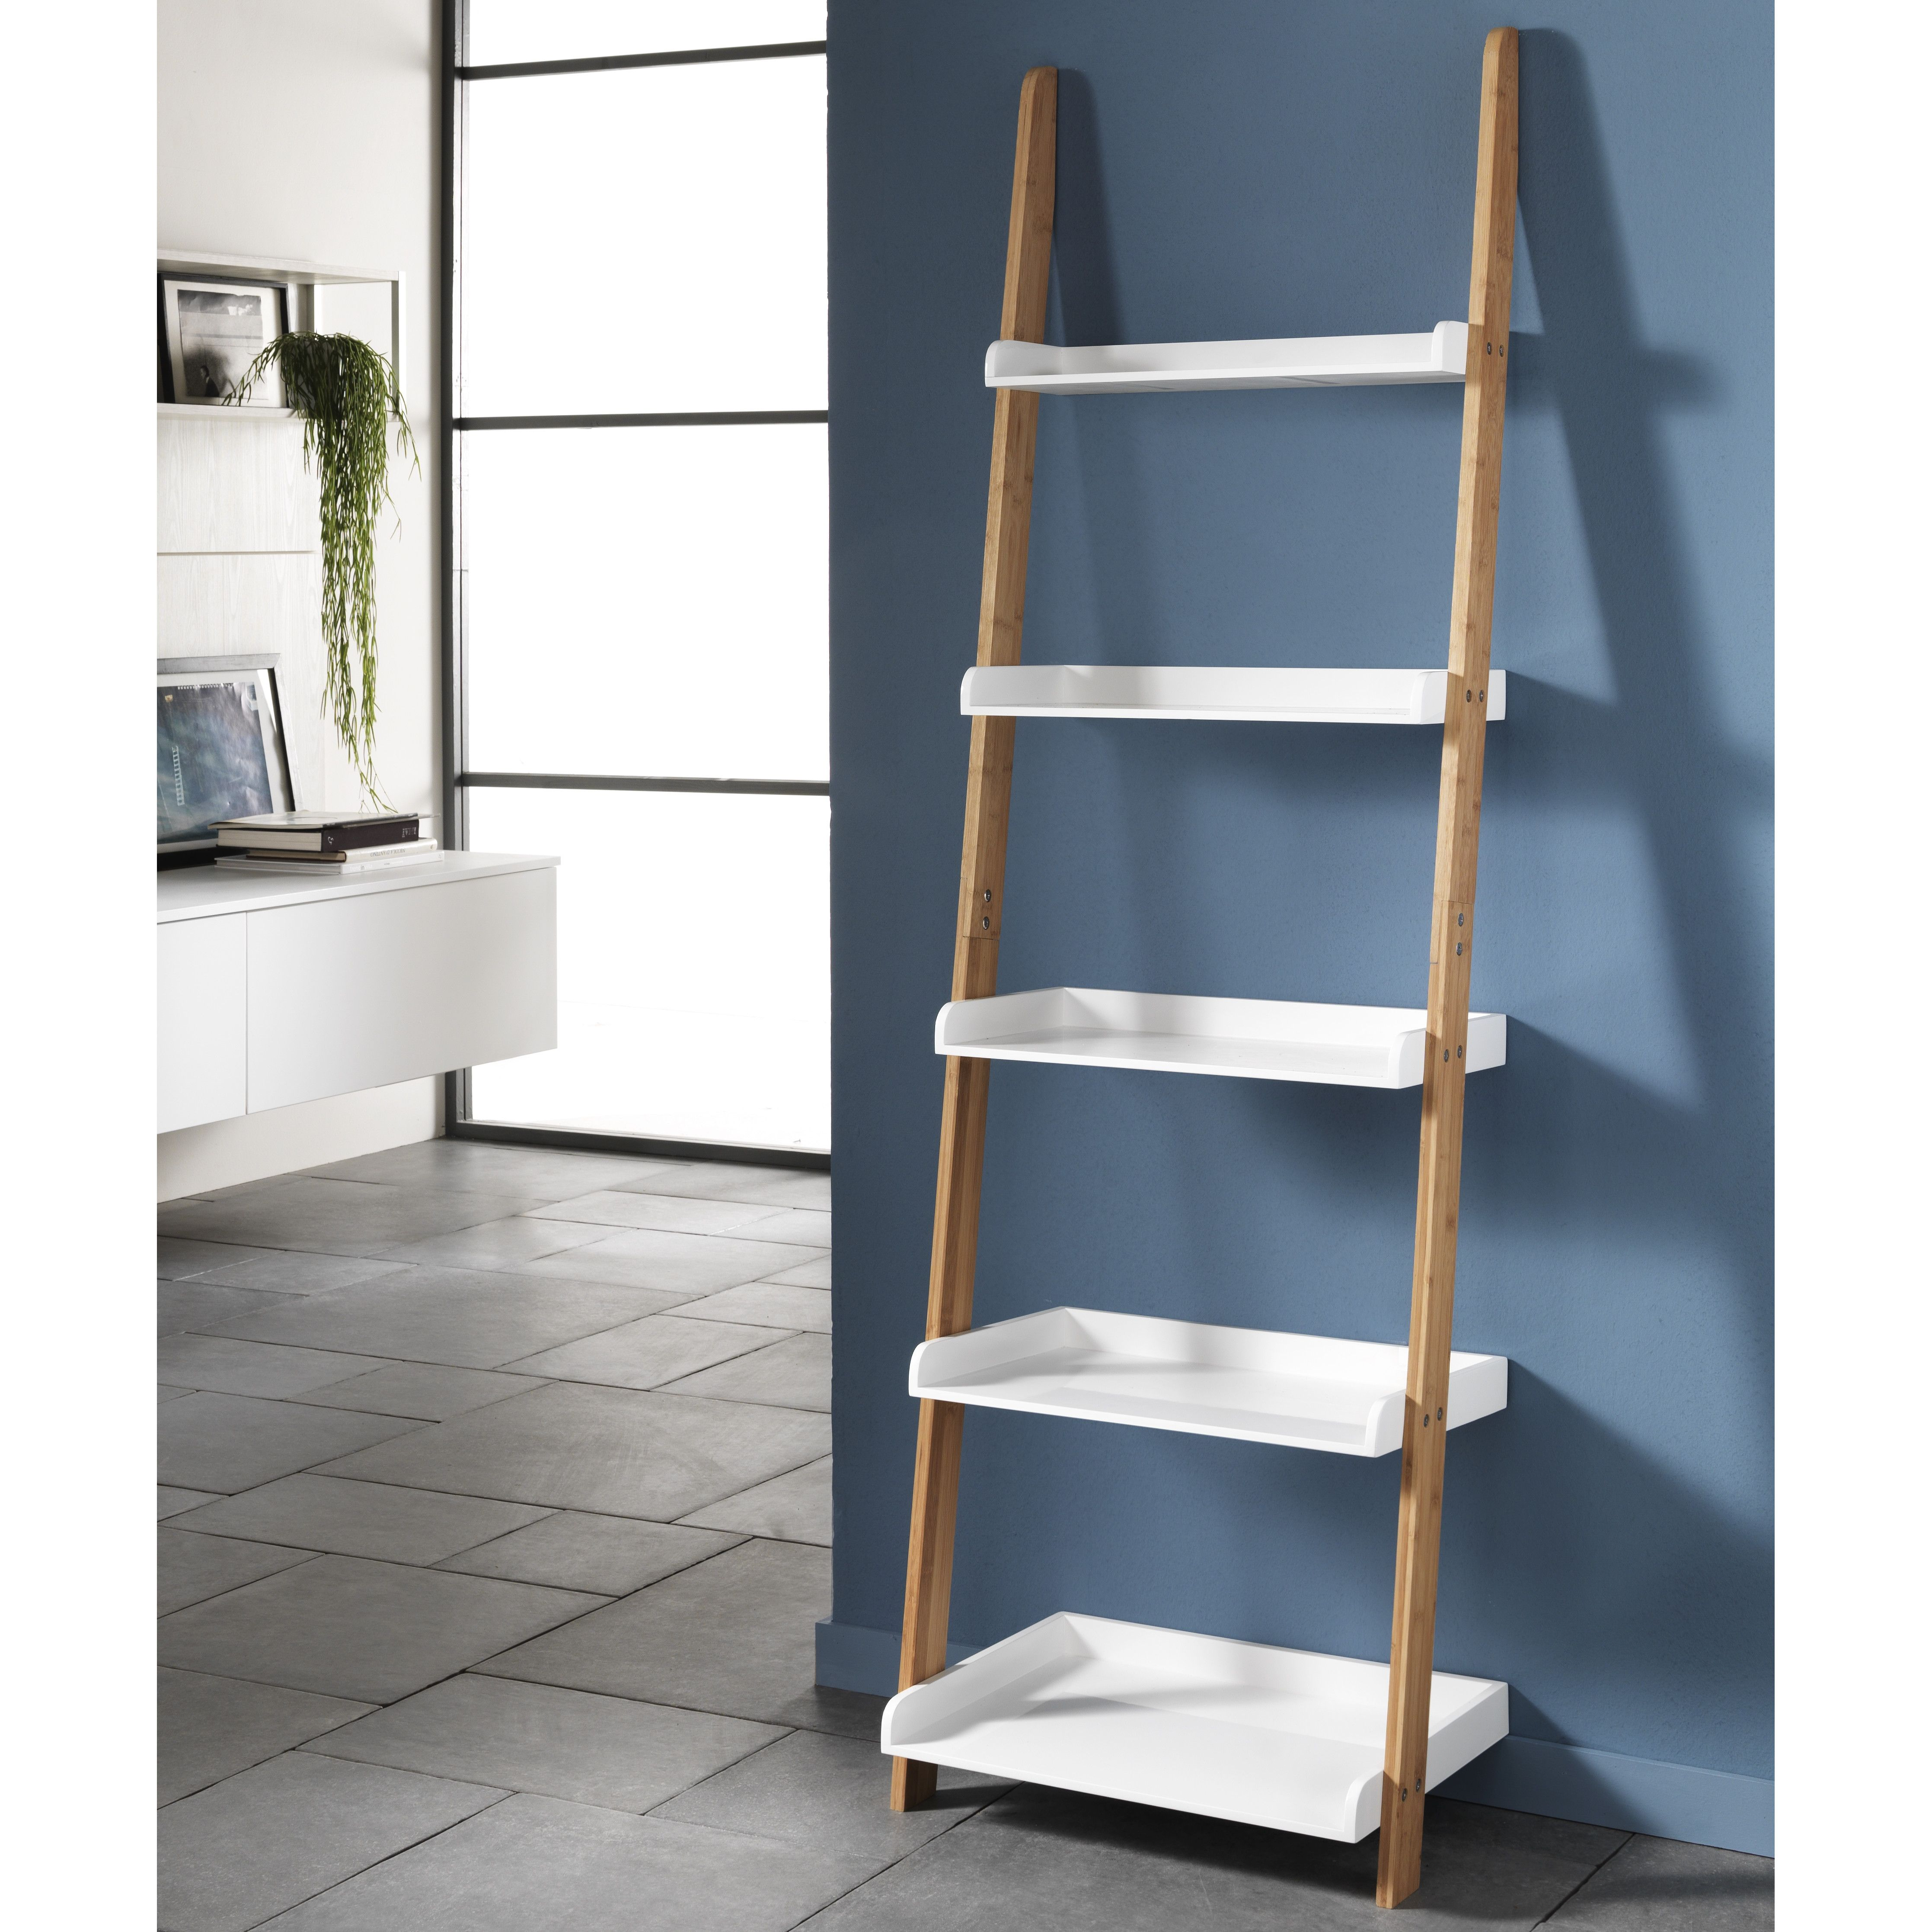 Find The Perfect Shelves For You Online At Wayfaircouk